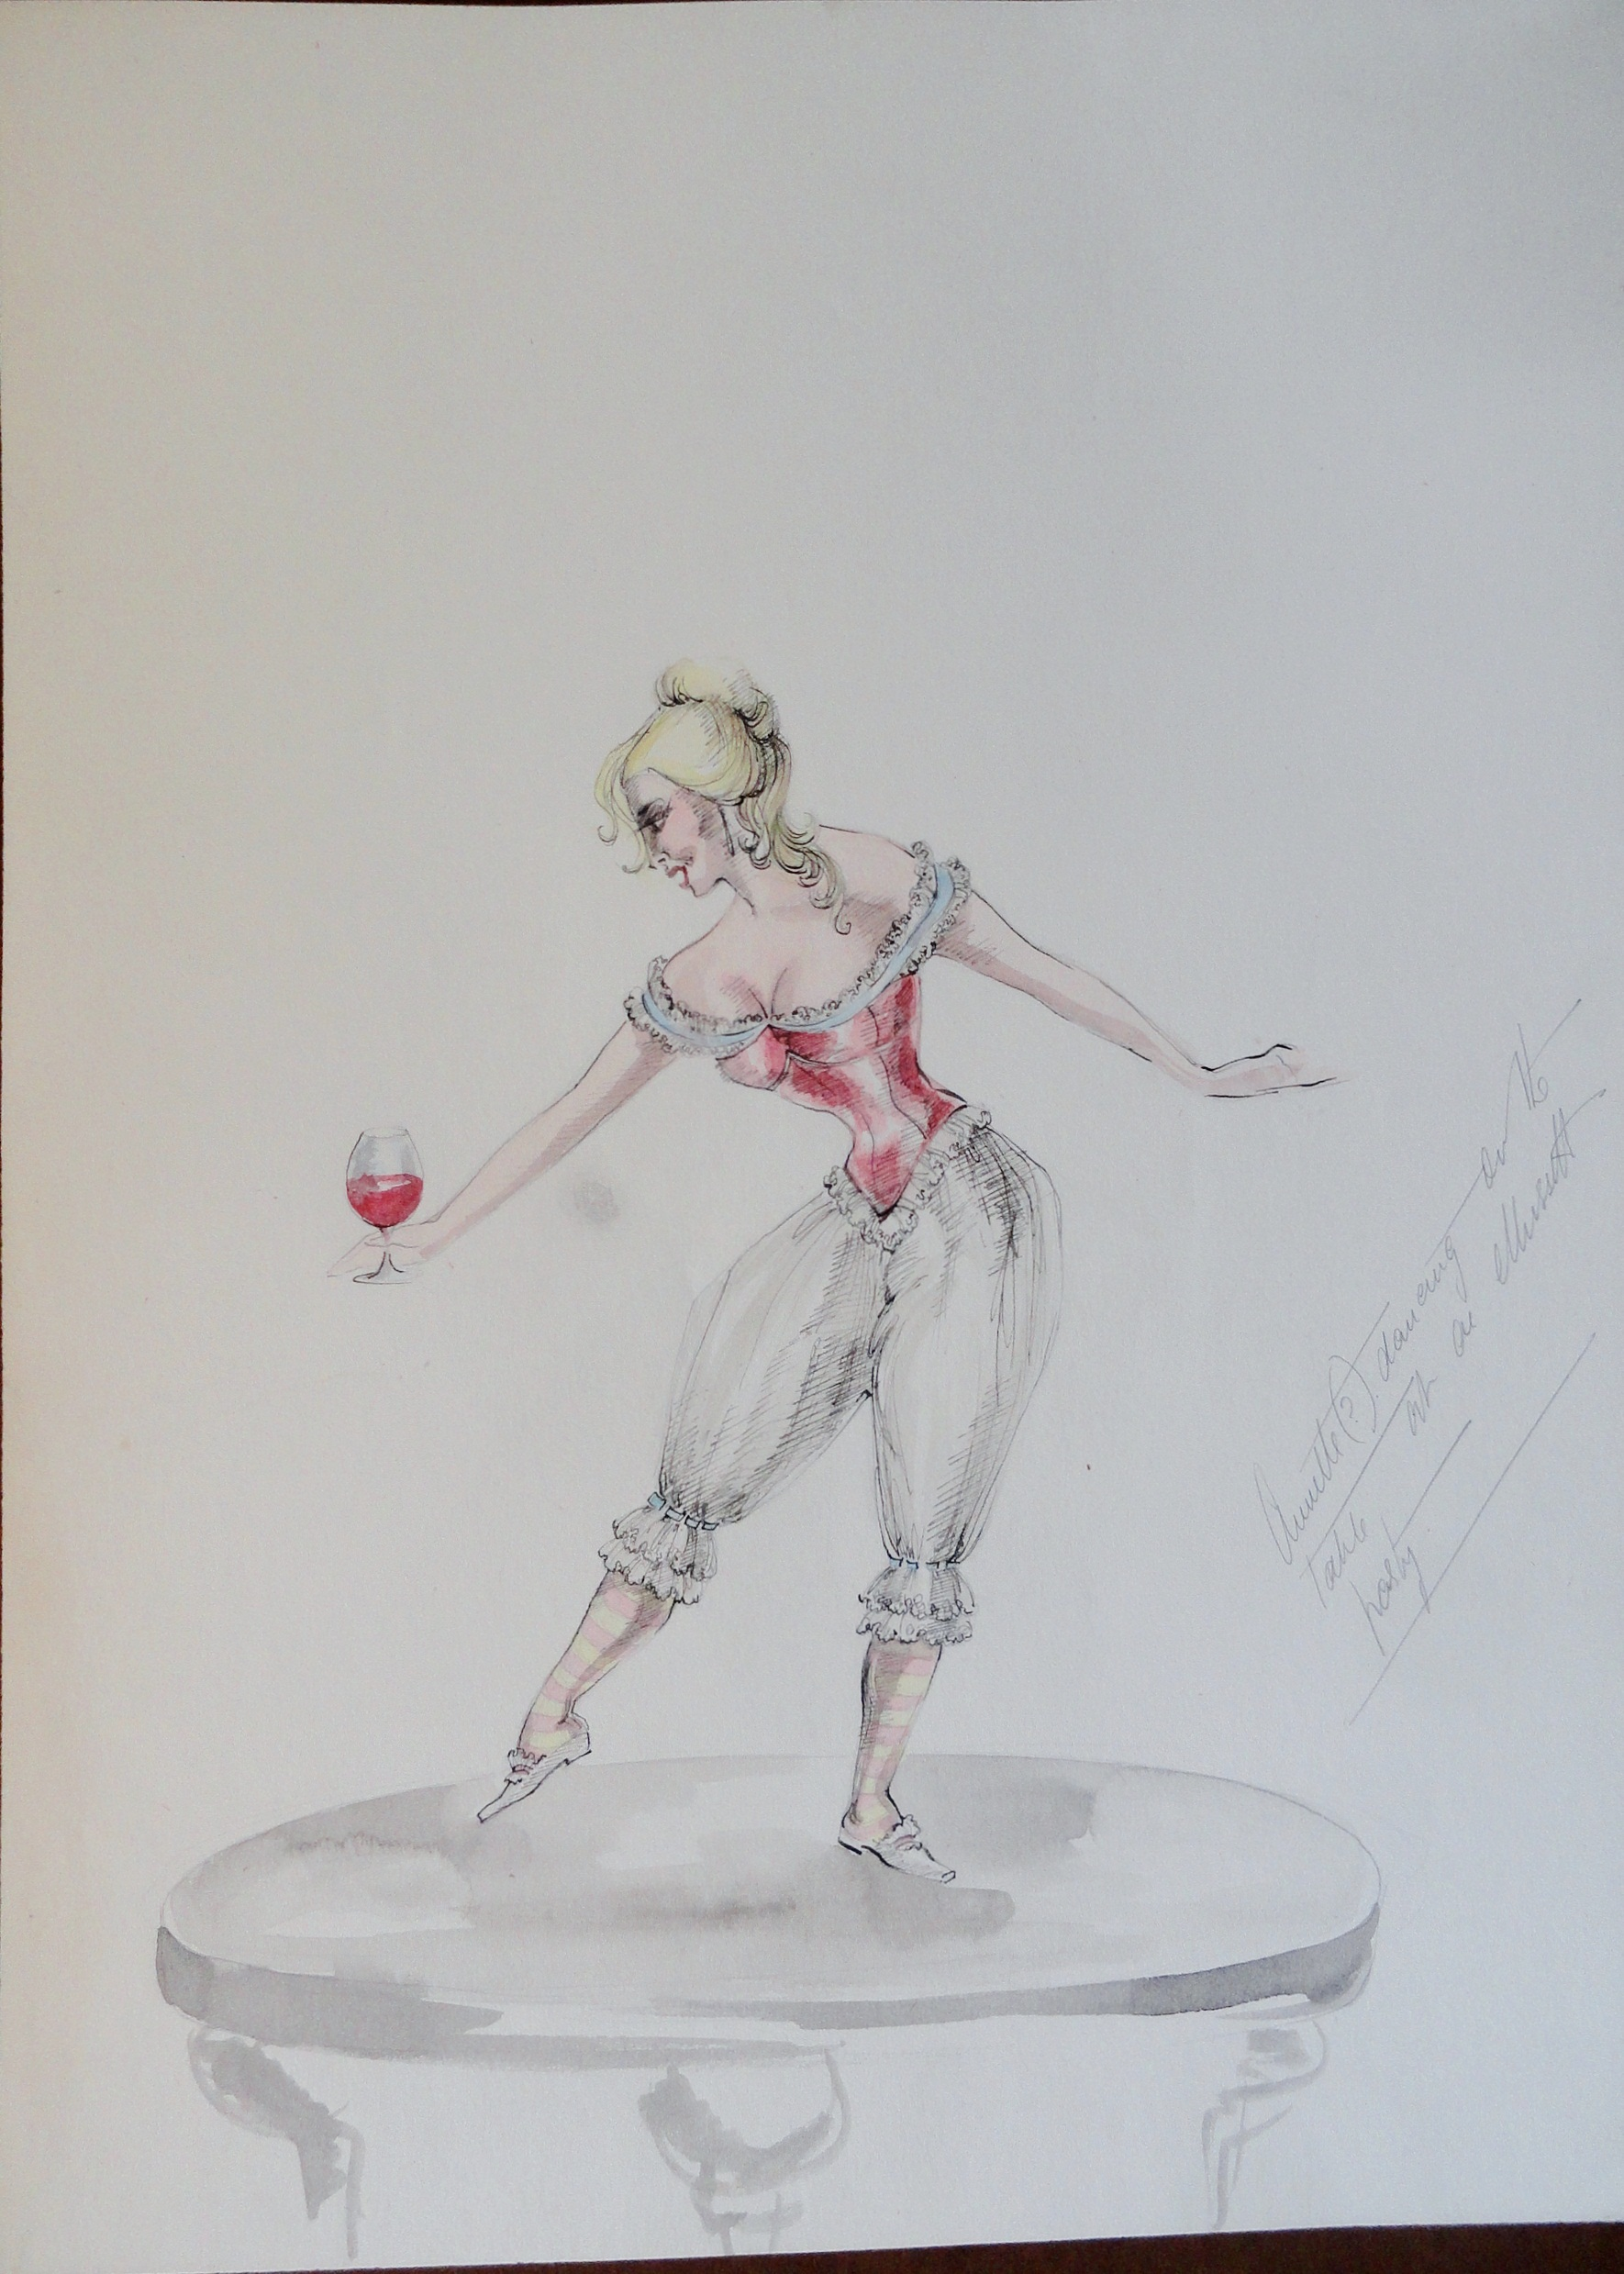 Rachels' sister Annette dancing on a table. Pen and ink and watercolor on paper. Unsigned, With artists notes. From the Rachel Portfolio by Owen Hyde Clark. $50.00